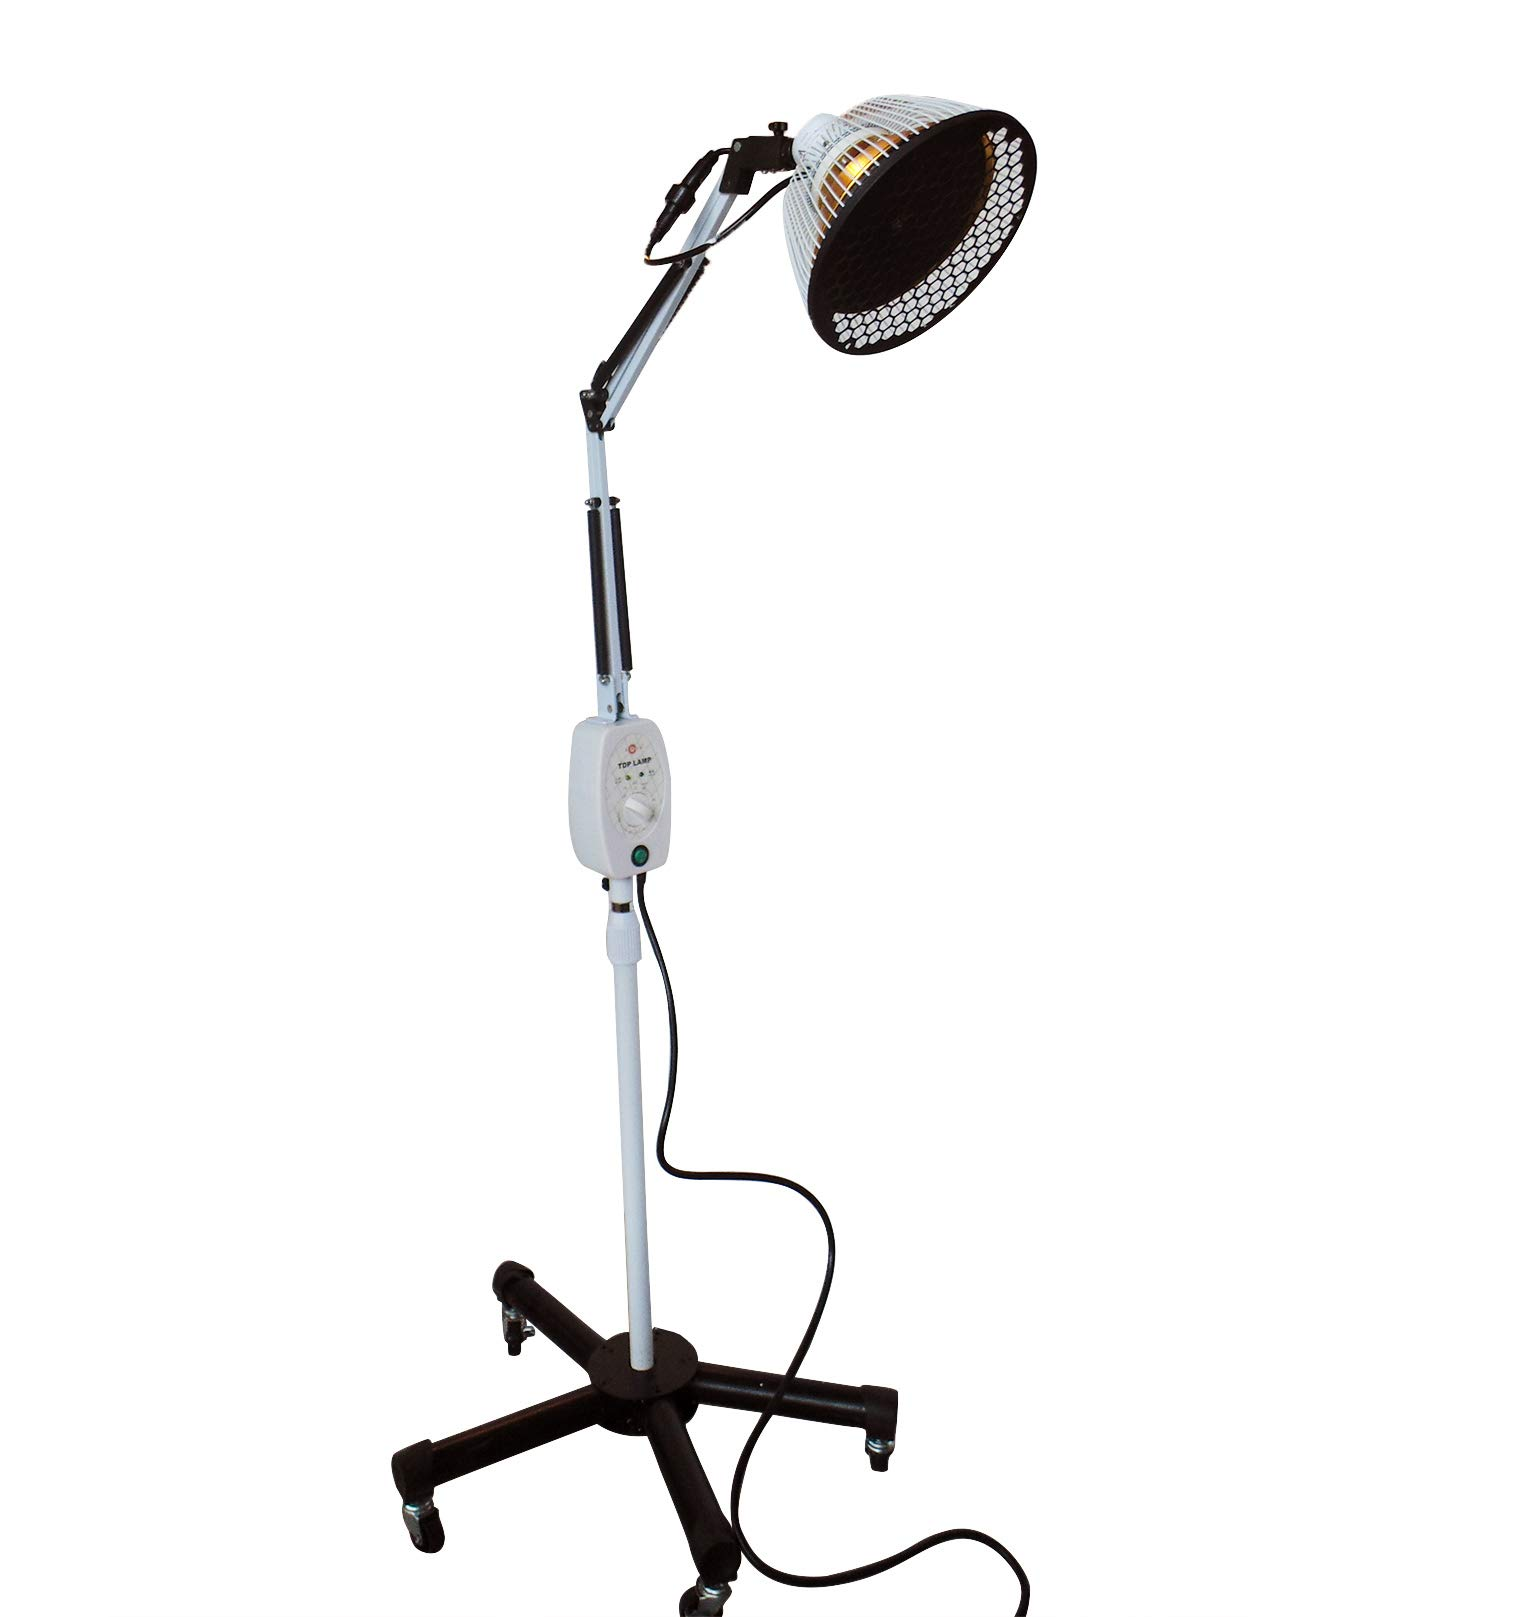 Improved TDP Lamp CQ222 - Genuine 6.5 inch Mineral Plate by VITA Activate | 3rd Generation Mineral Lamp is Best + Detachable Head + Protection Cap by CHISOFT